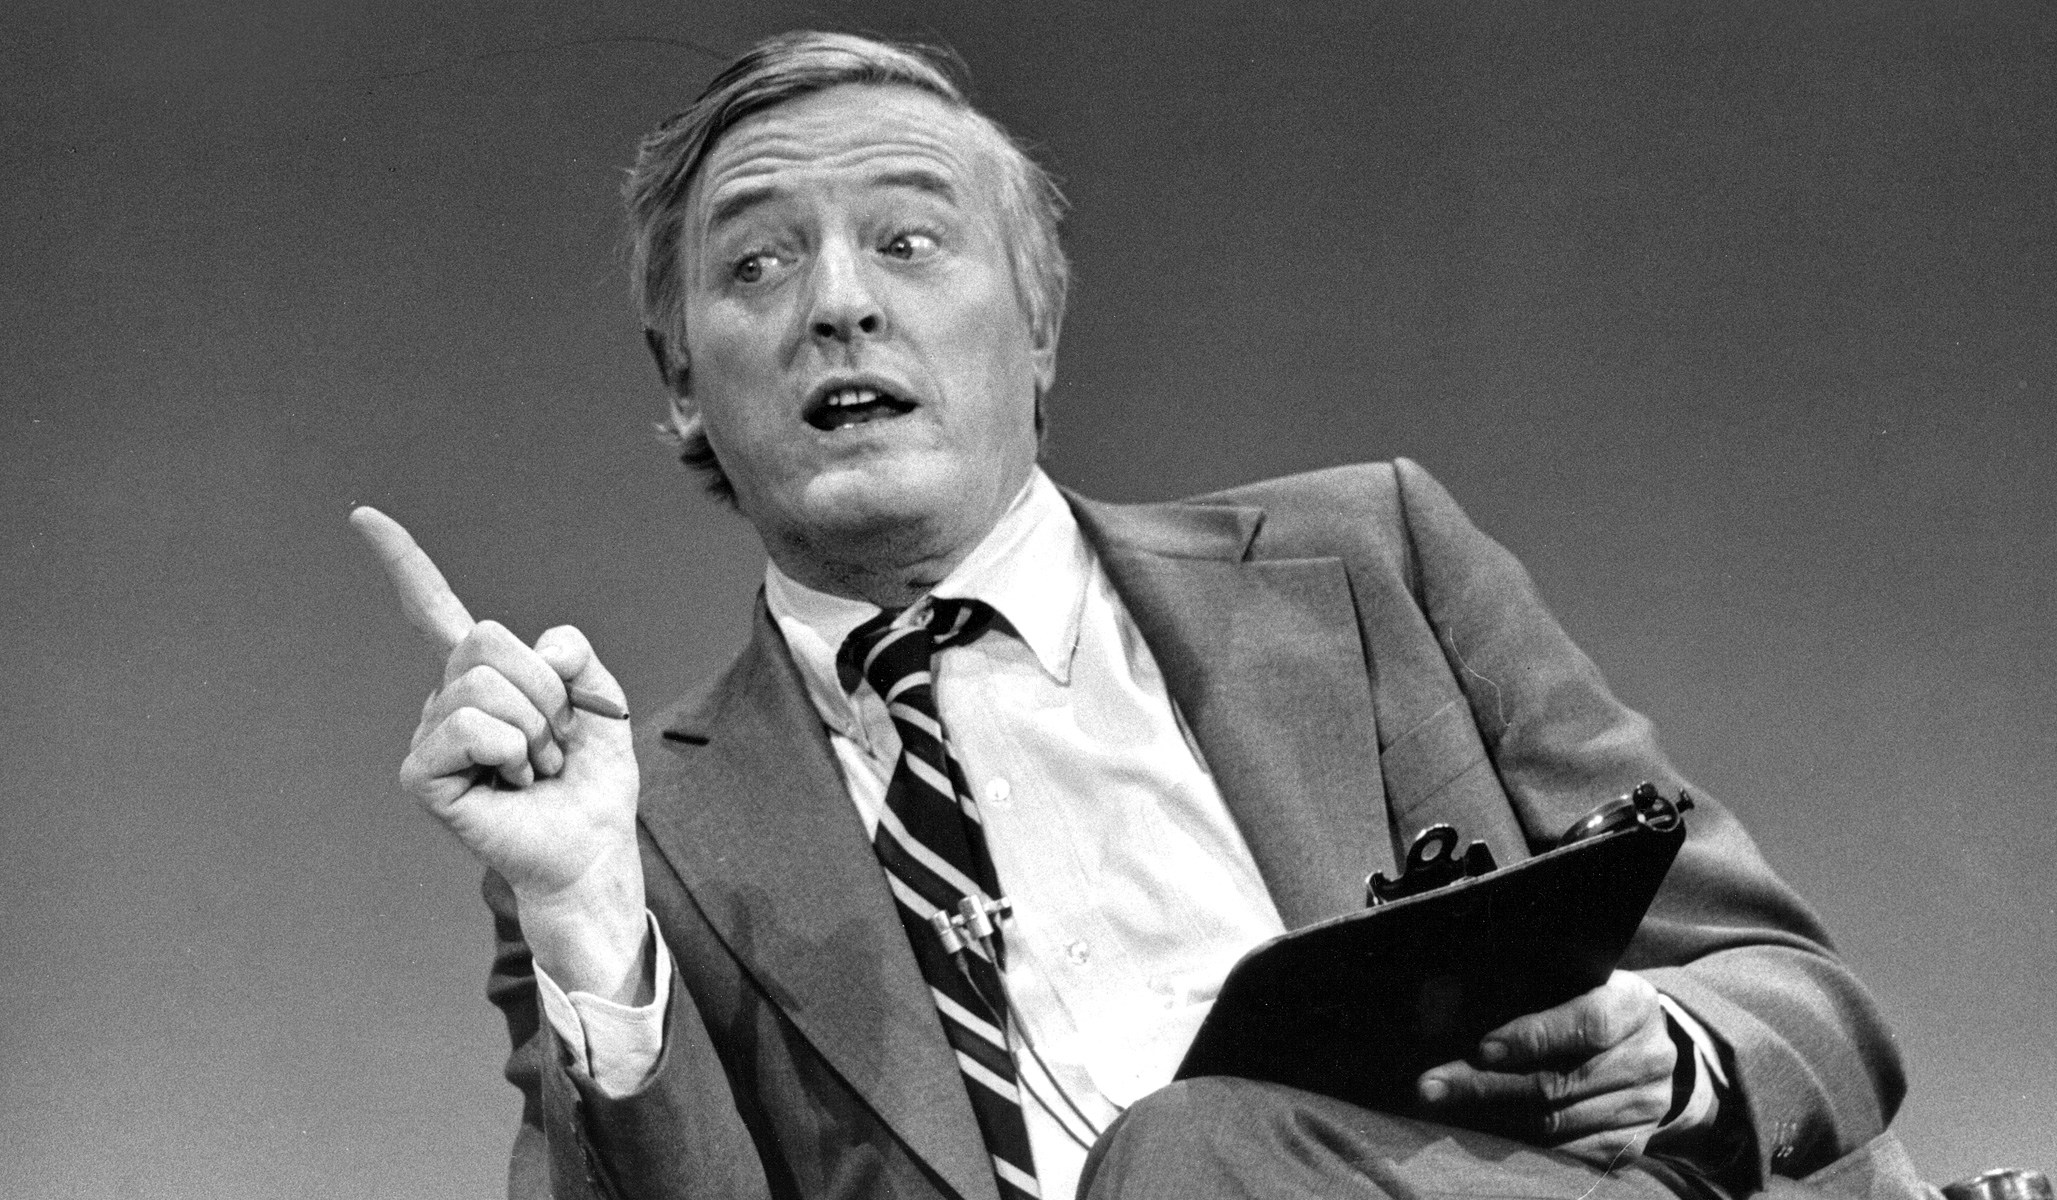 William F Buckley Firing Line Storm Wiring Diagrams Pbs To Launch Conservative Talk Show Rh Outsidethebeltway Com Jr